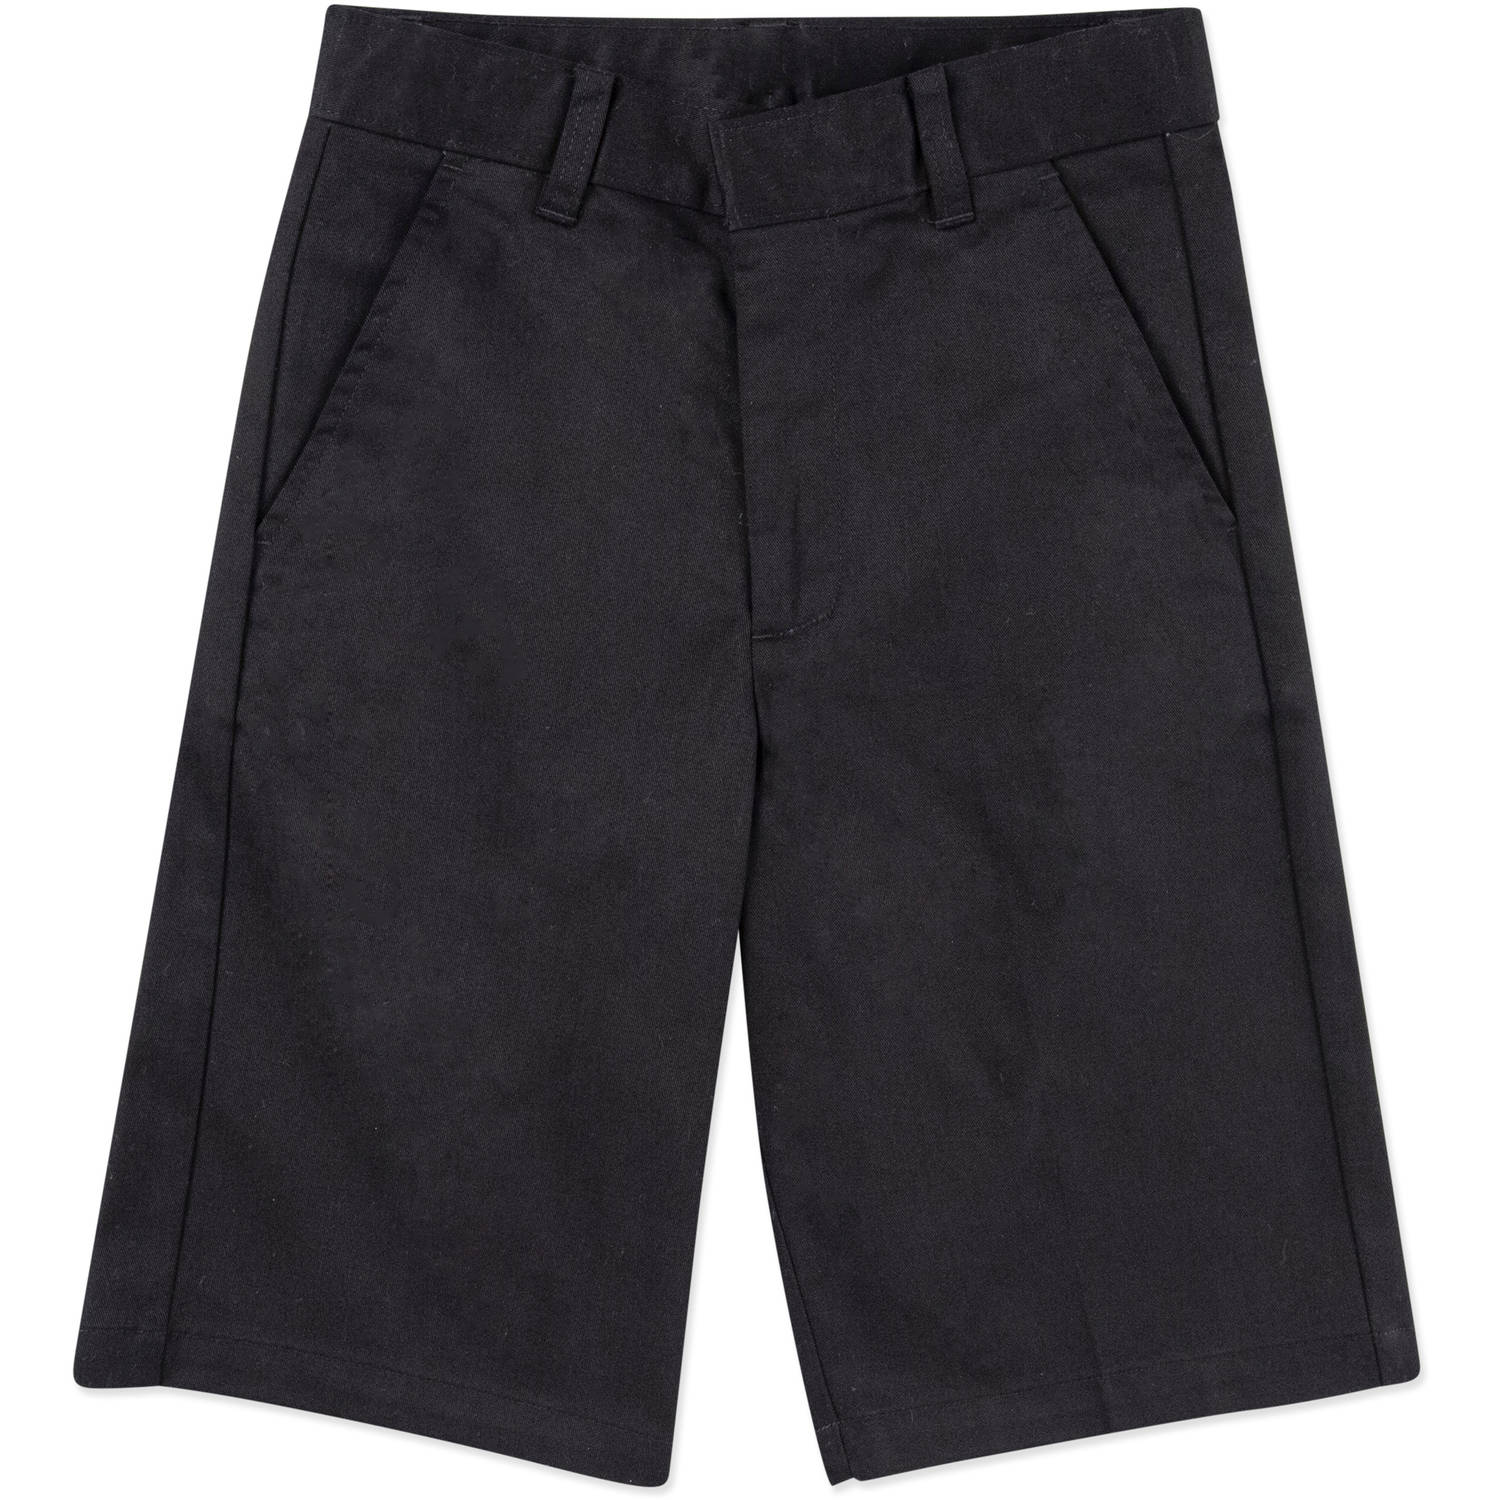 George Boys School Uniforms Husky Size Flat Front Shorts